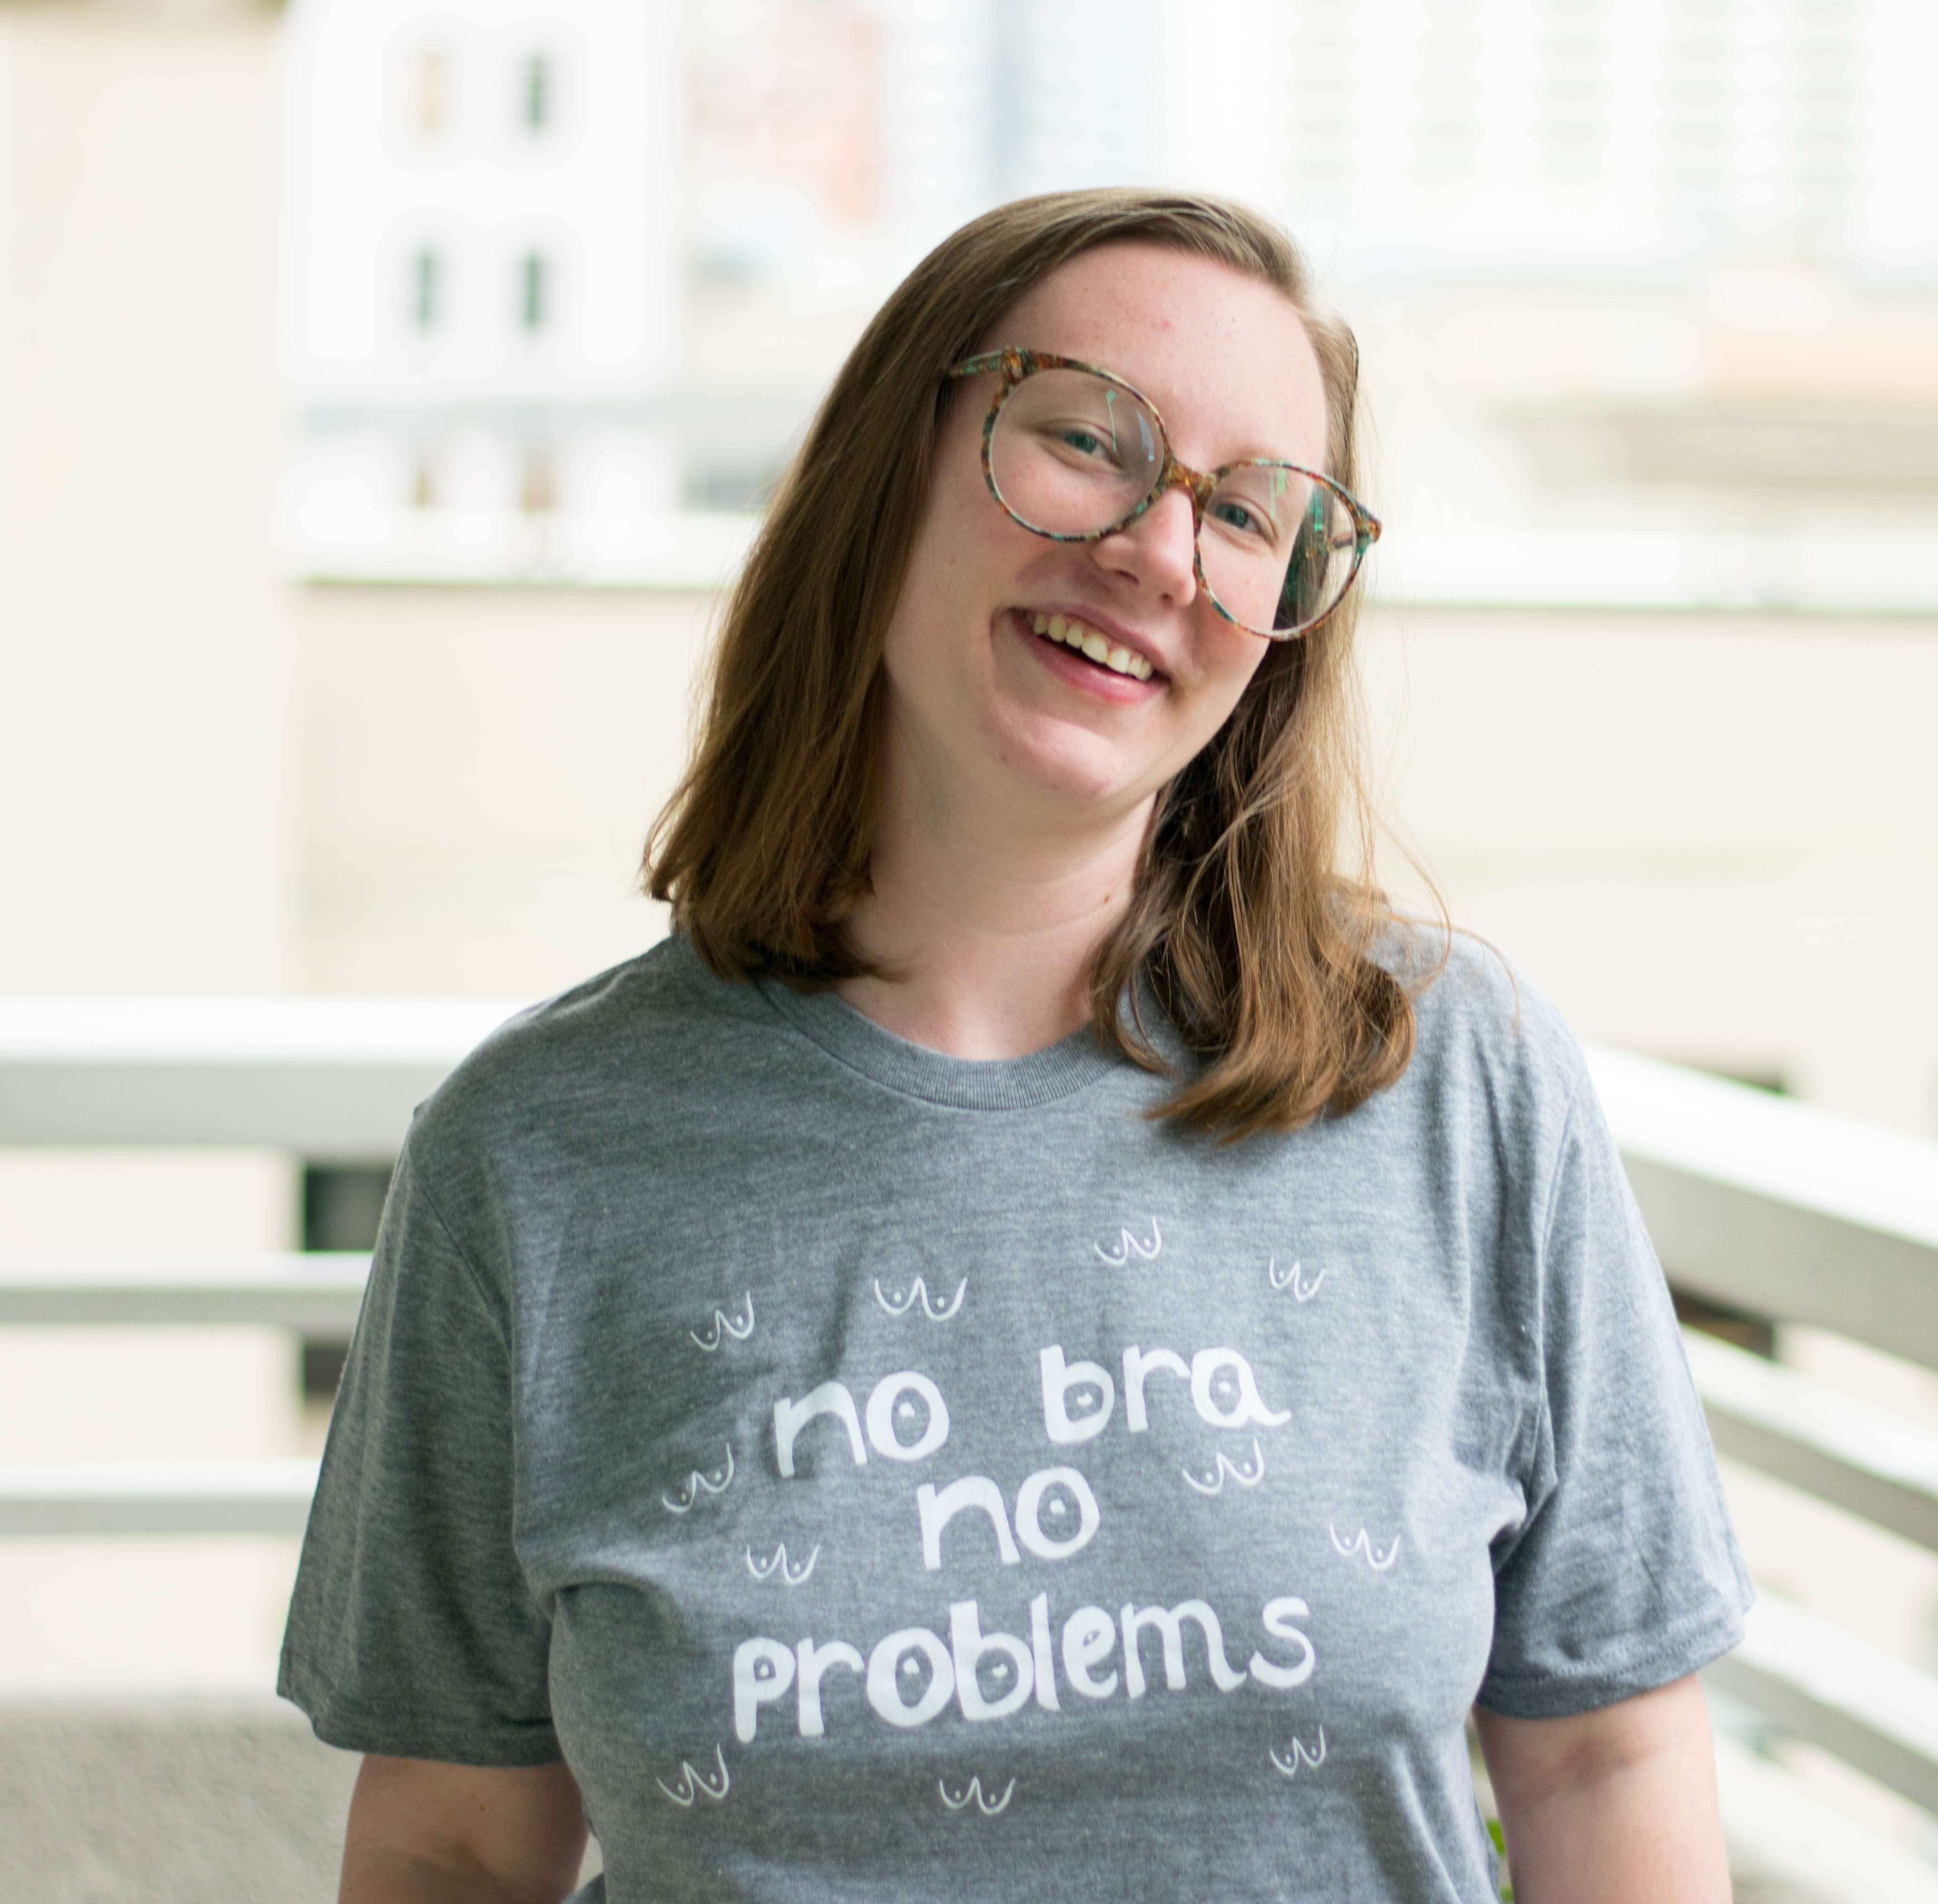 no bra no problems t-shirt